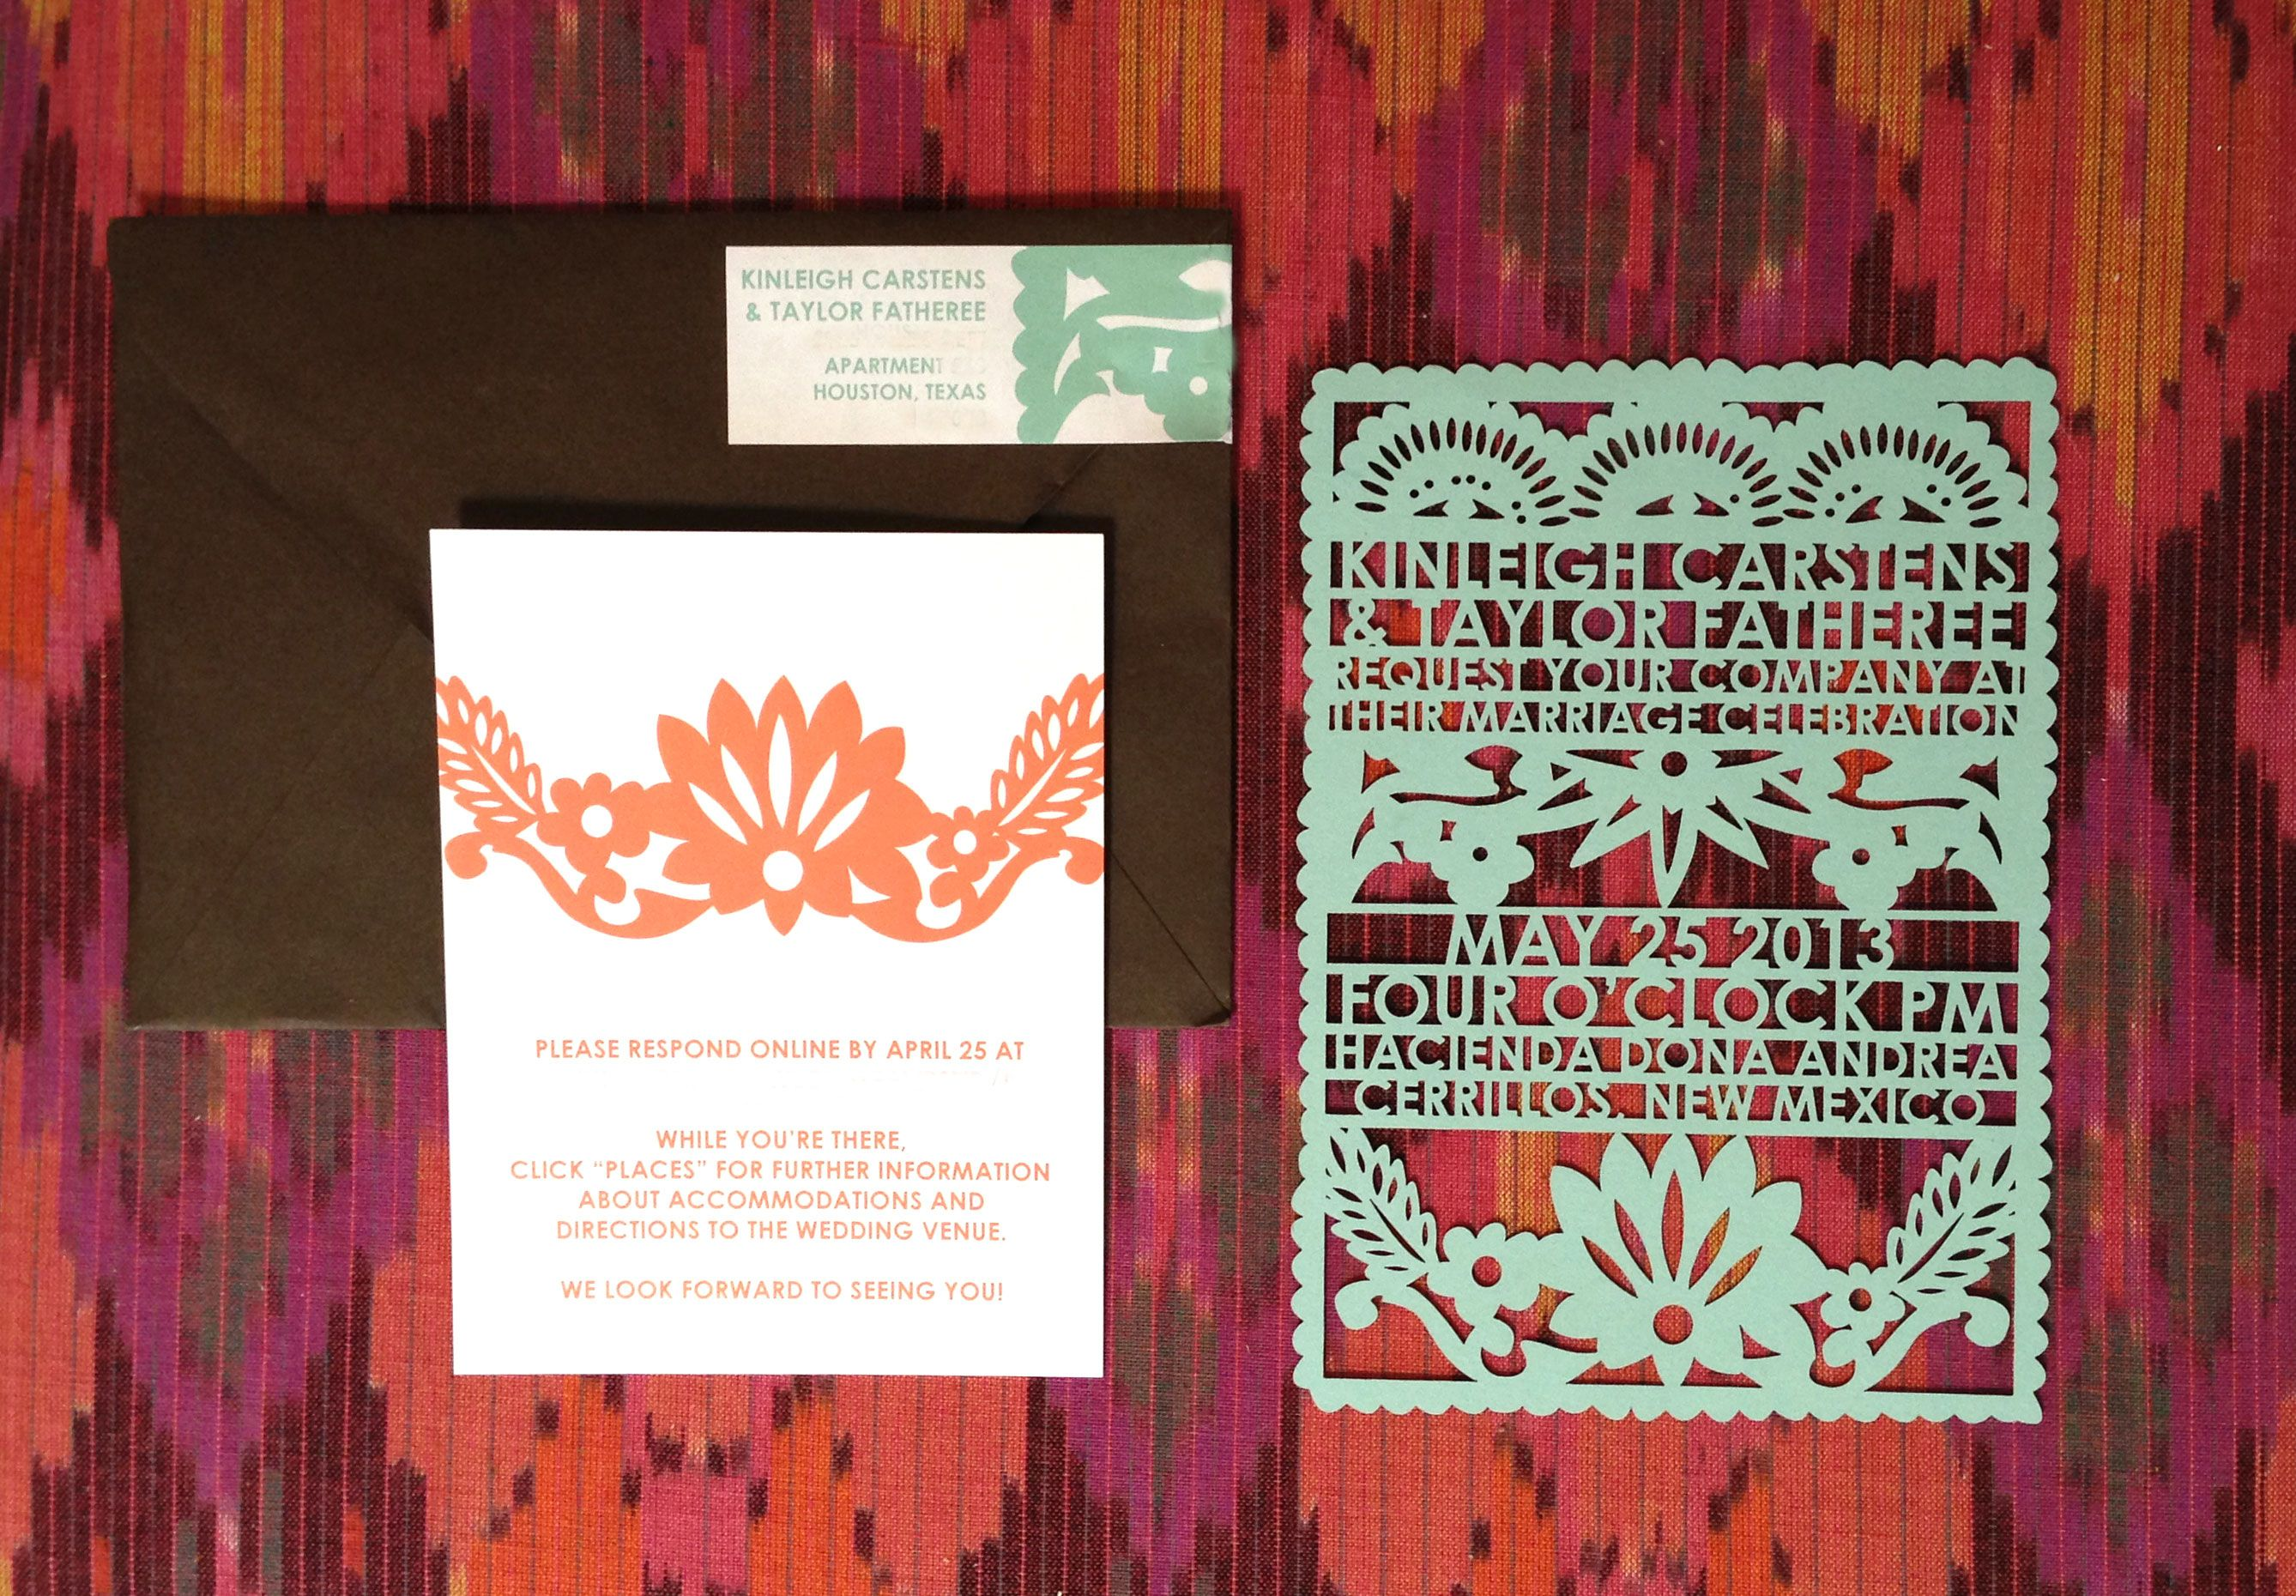 find this pin and more on wedding papel picado inspired invitations - Papel Picado Wedding Invitations